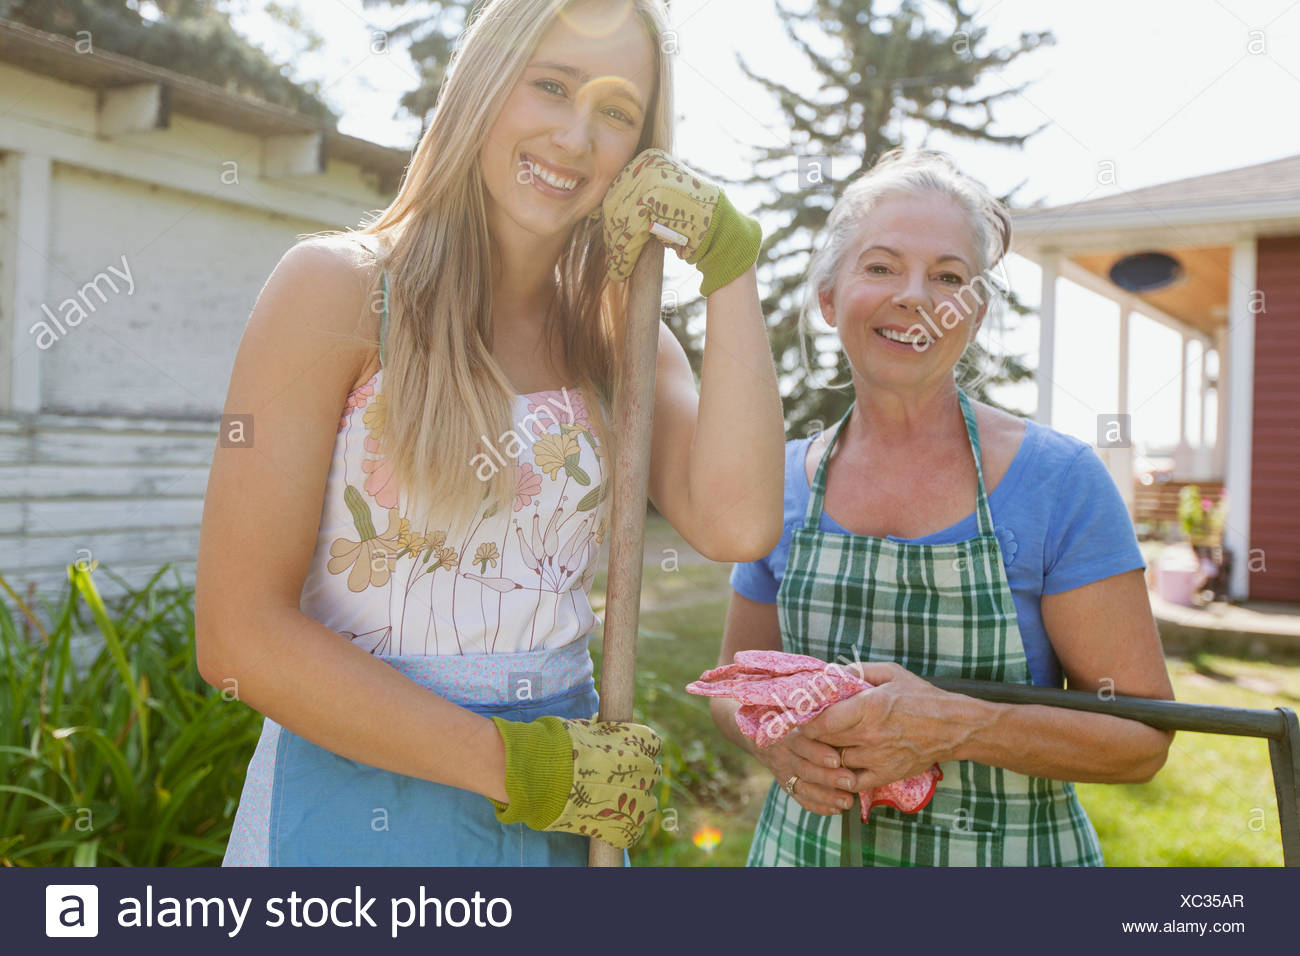 Mother and daughter outdoors doing yard work. - Stock Image